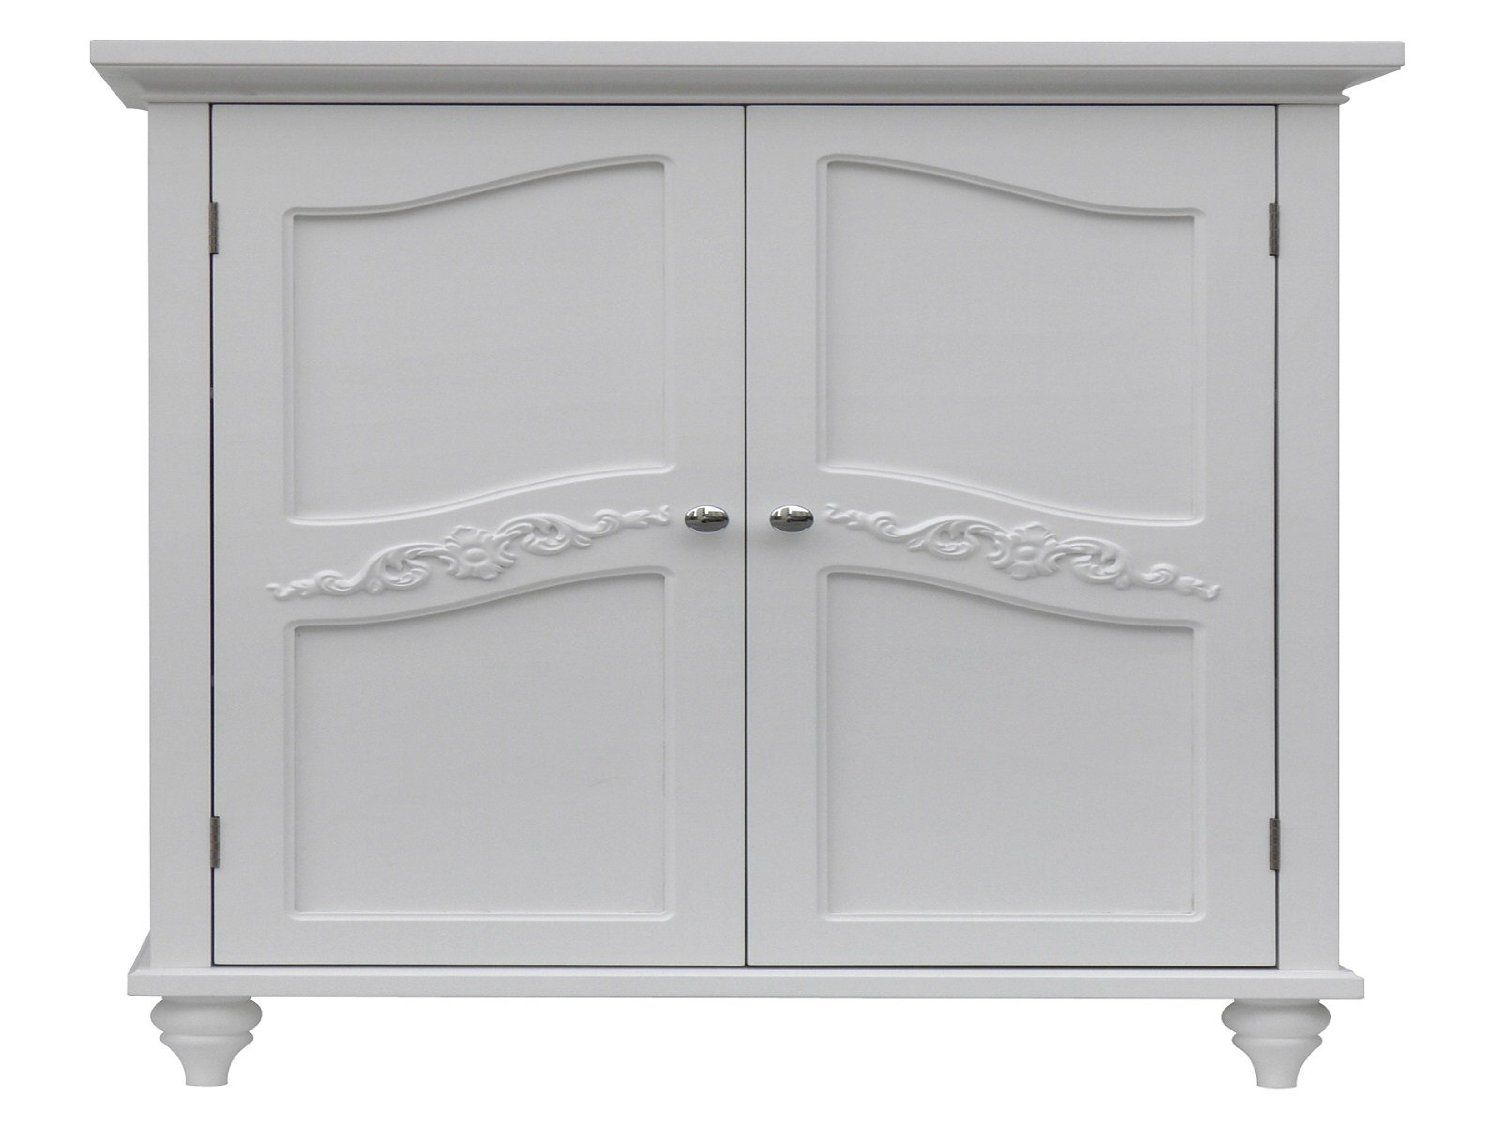 91 Amazon Com Elegant Home Fashion Vera 2 Door Floor Cabinet White Home House Styles Elegant Homes Storage Cabinets